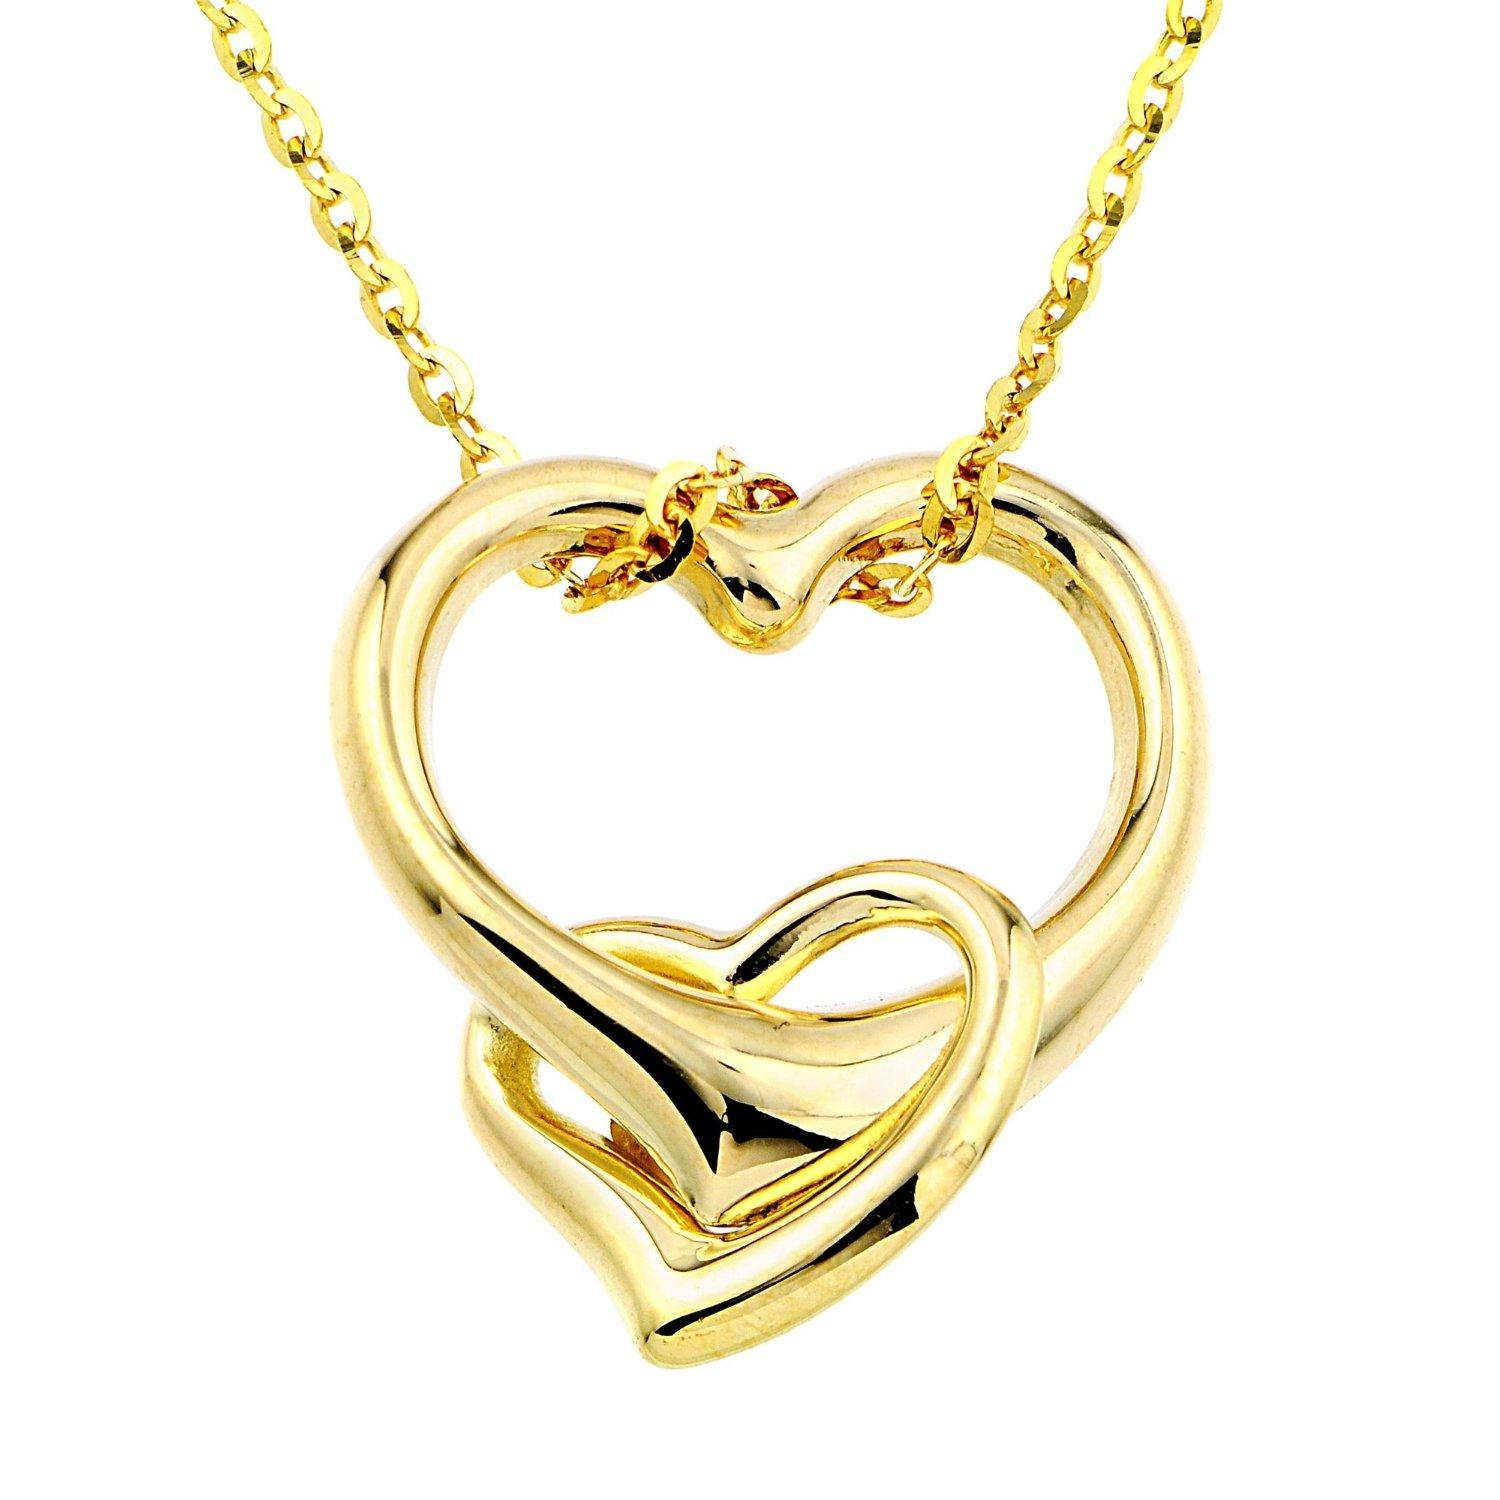 prod criss product heart crissangel necklace angel chain the jewellery jewelry org triple